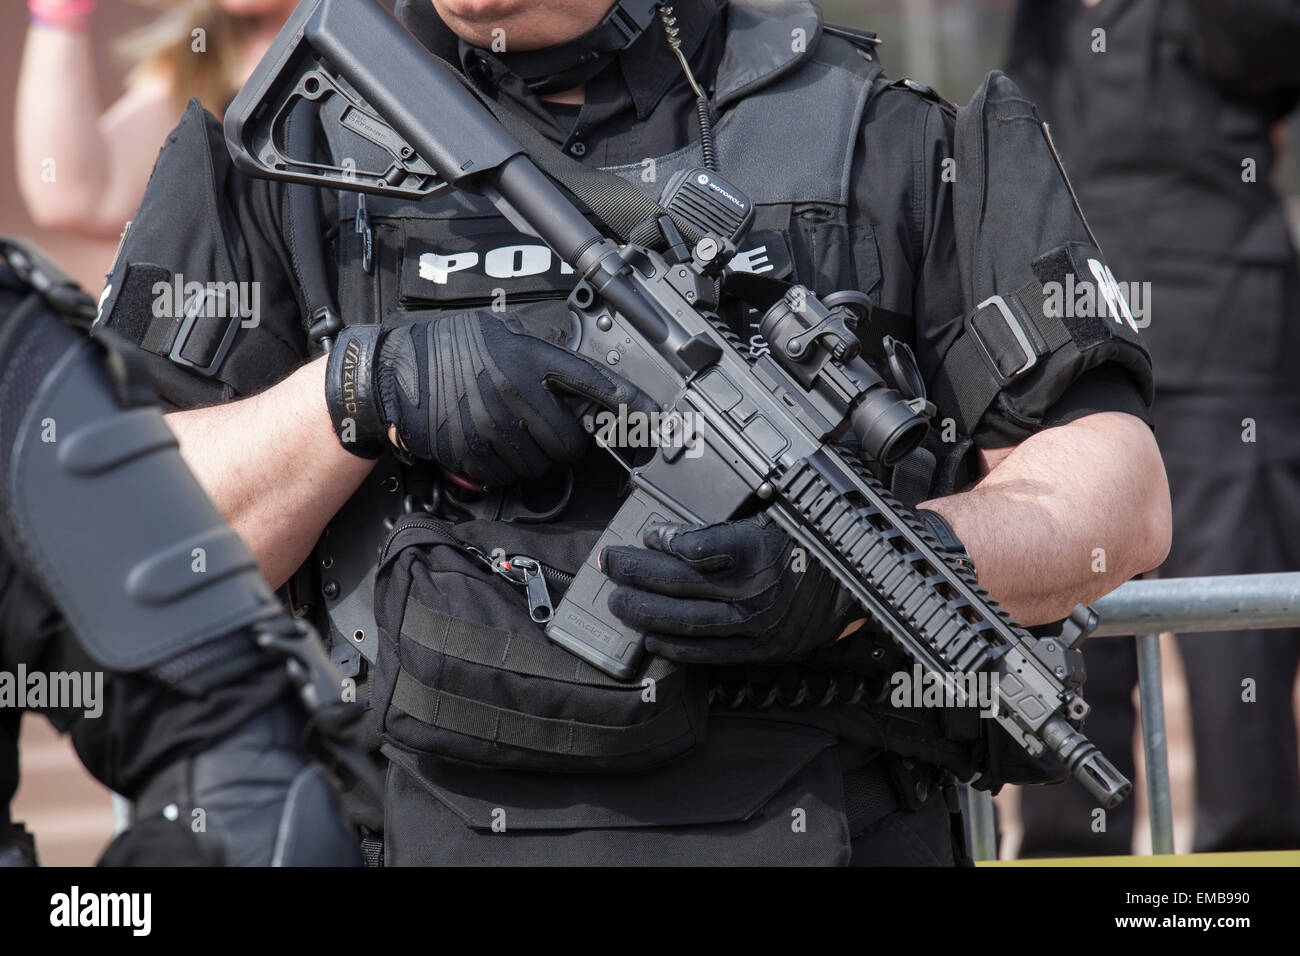 Toledo, Ohio - Police in riot gear protected members of the neo-Nazi National Socialist Movement as they held a - Stock Image